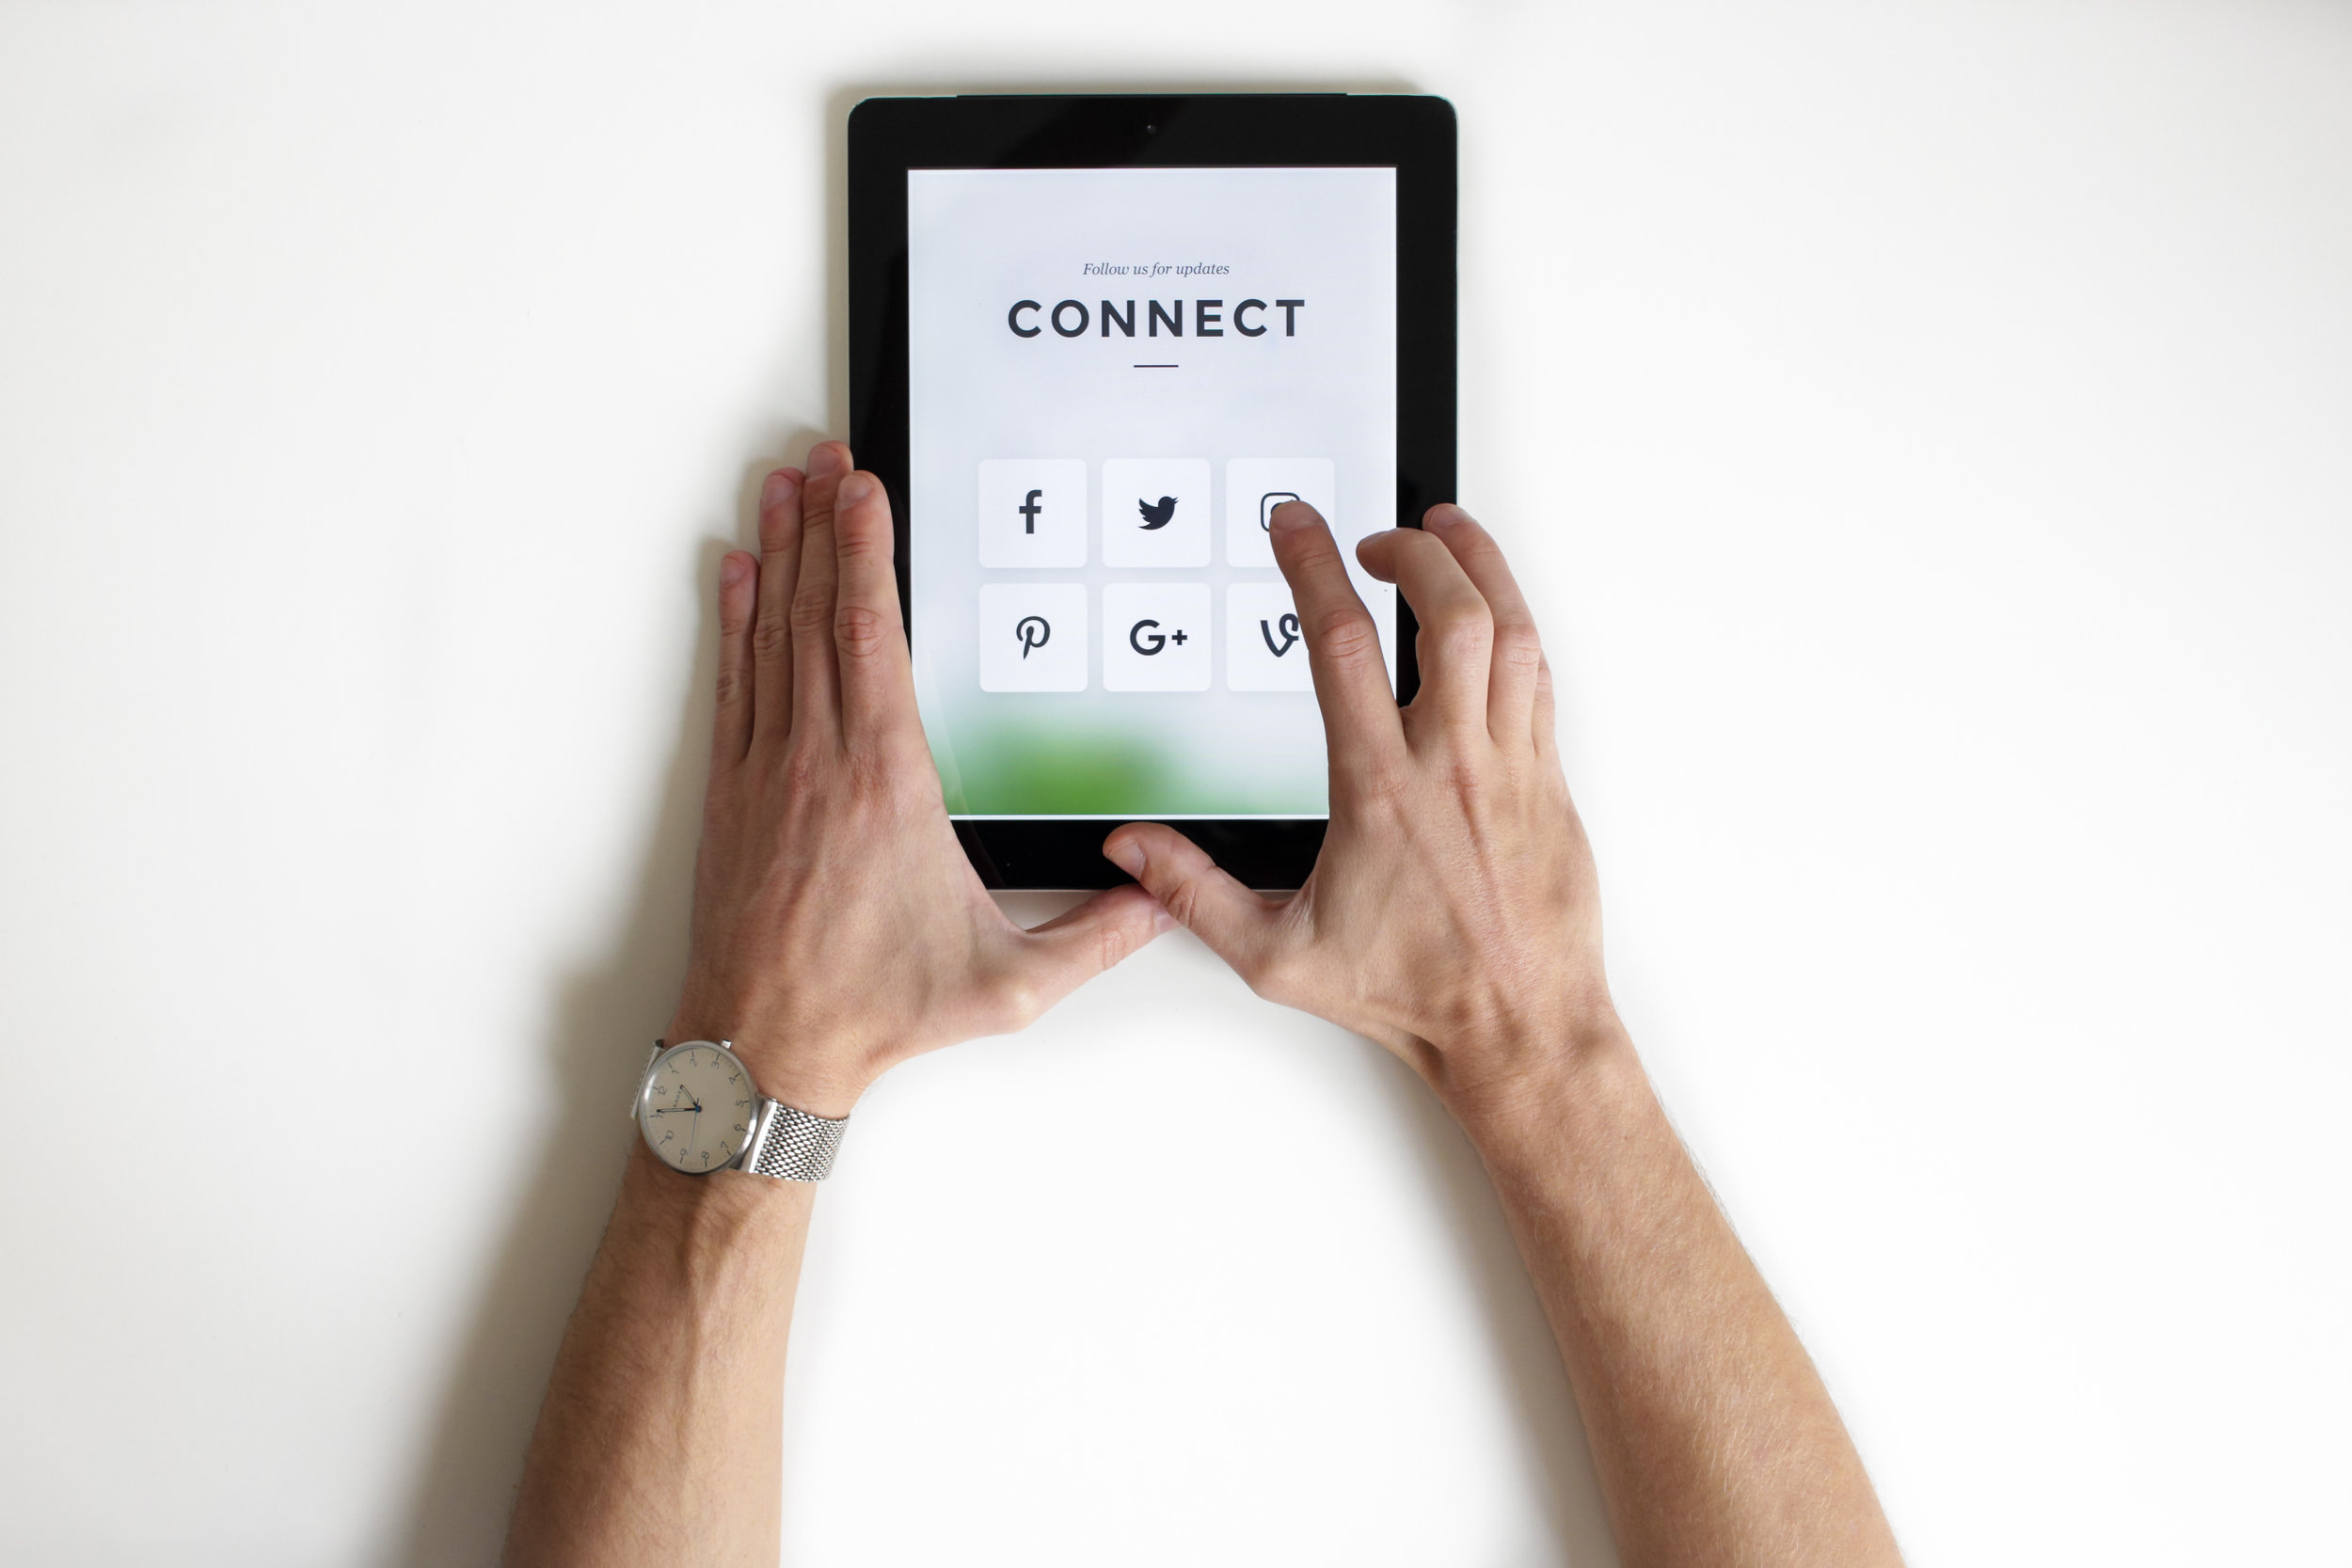 start up - Plan on managing your social media platforms but just need some help getting started? Let us help by setting up & optimizing your networks to get the most out of your profiles.